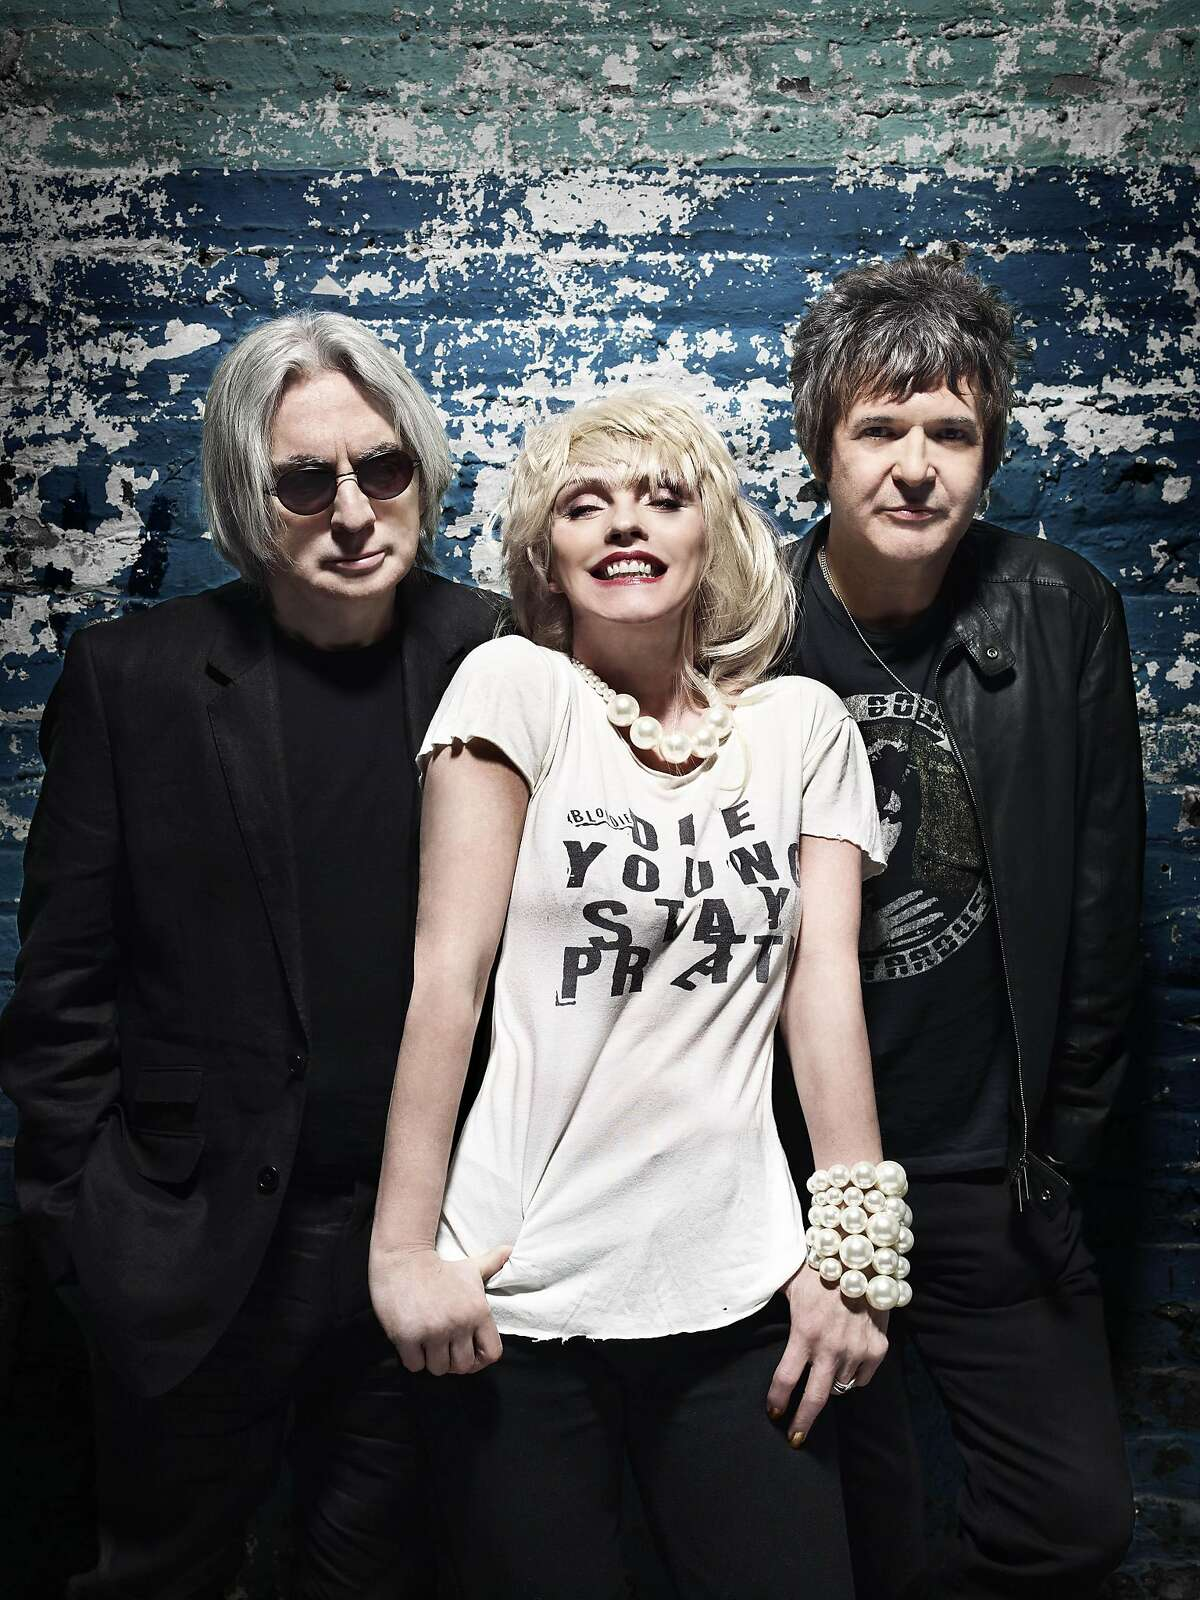 """Three of Blondie's orignal members, Chris Stein, Deborah Harry and Clem Burke, will be performing along with several new members at a Sunday, Oct. 7, 2012, show at the Capitol Theatre, 149 Westchester Ave, Port Chester, N.Y. Last year, the band released its ninth album, """"Panic of Girls."""" For more information, call 914-937-4126 or visit www.thecapitoltheatre.com. Contributed photo/F. Scott Schafer"""